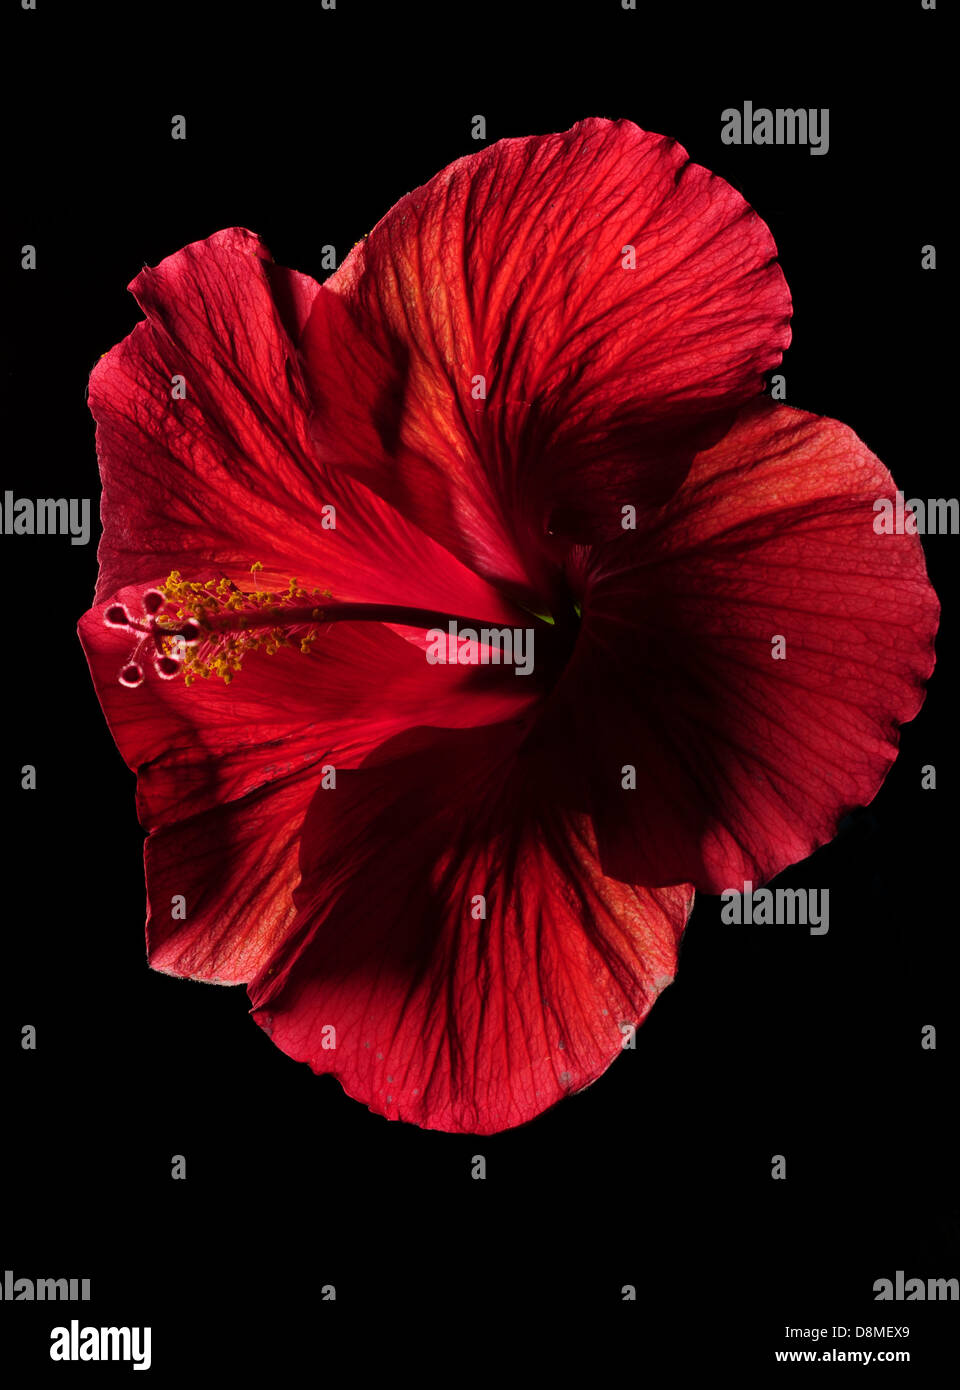 Red hibiscus flower on black background stock photo 56999105 alamy red hibiscus flower on black background izmirmasajfo